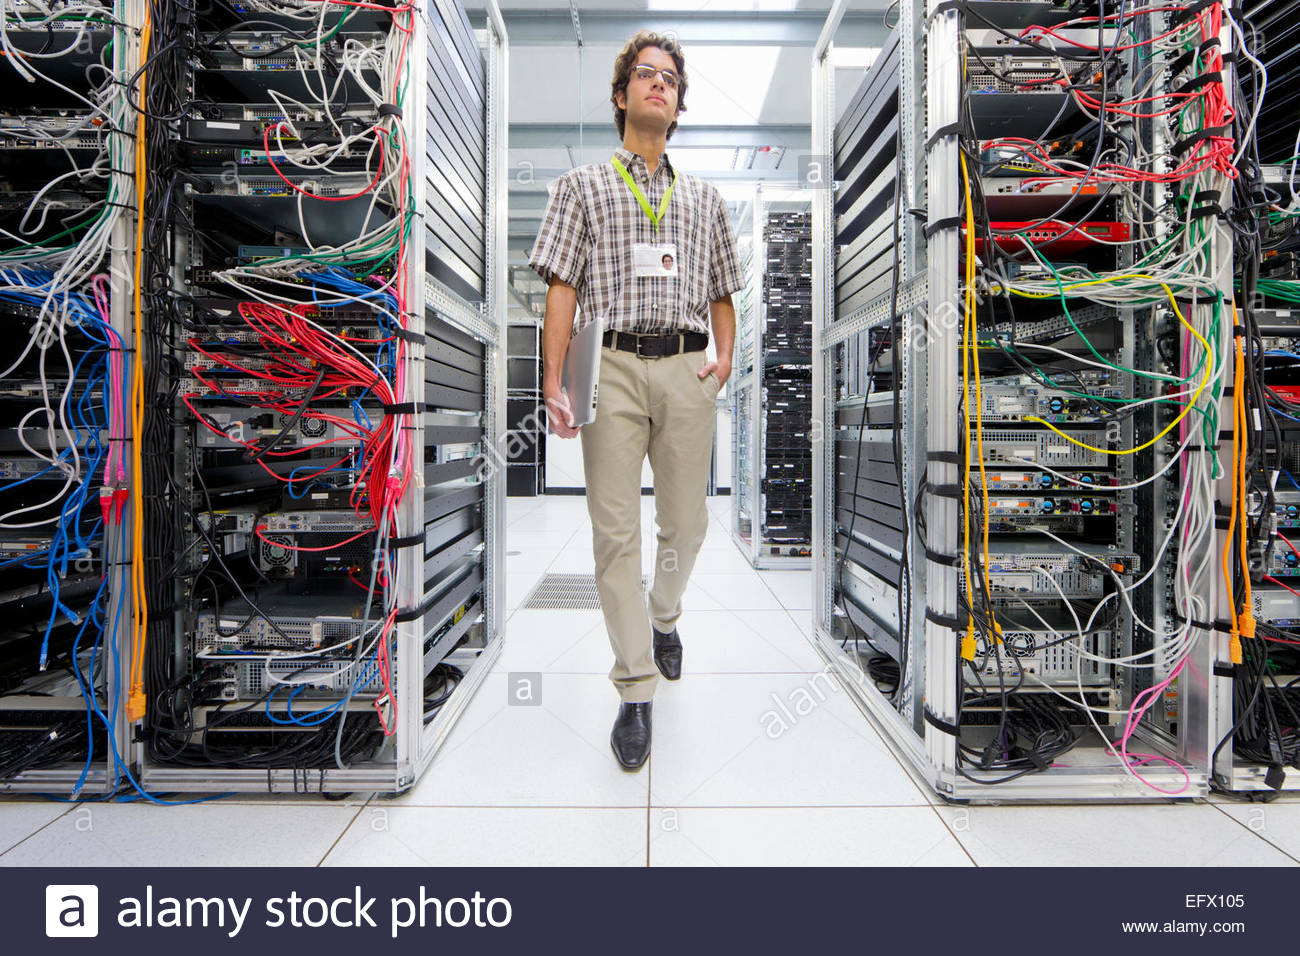 Technician walking through server room of data center Stock Photo